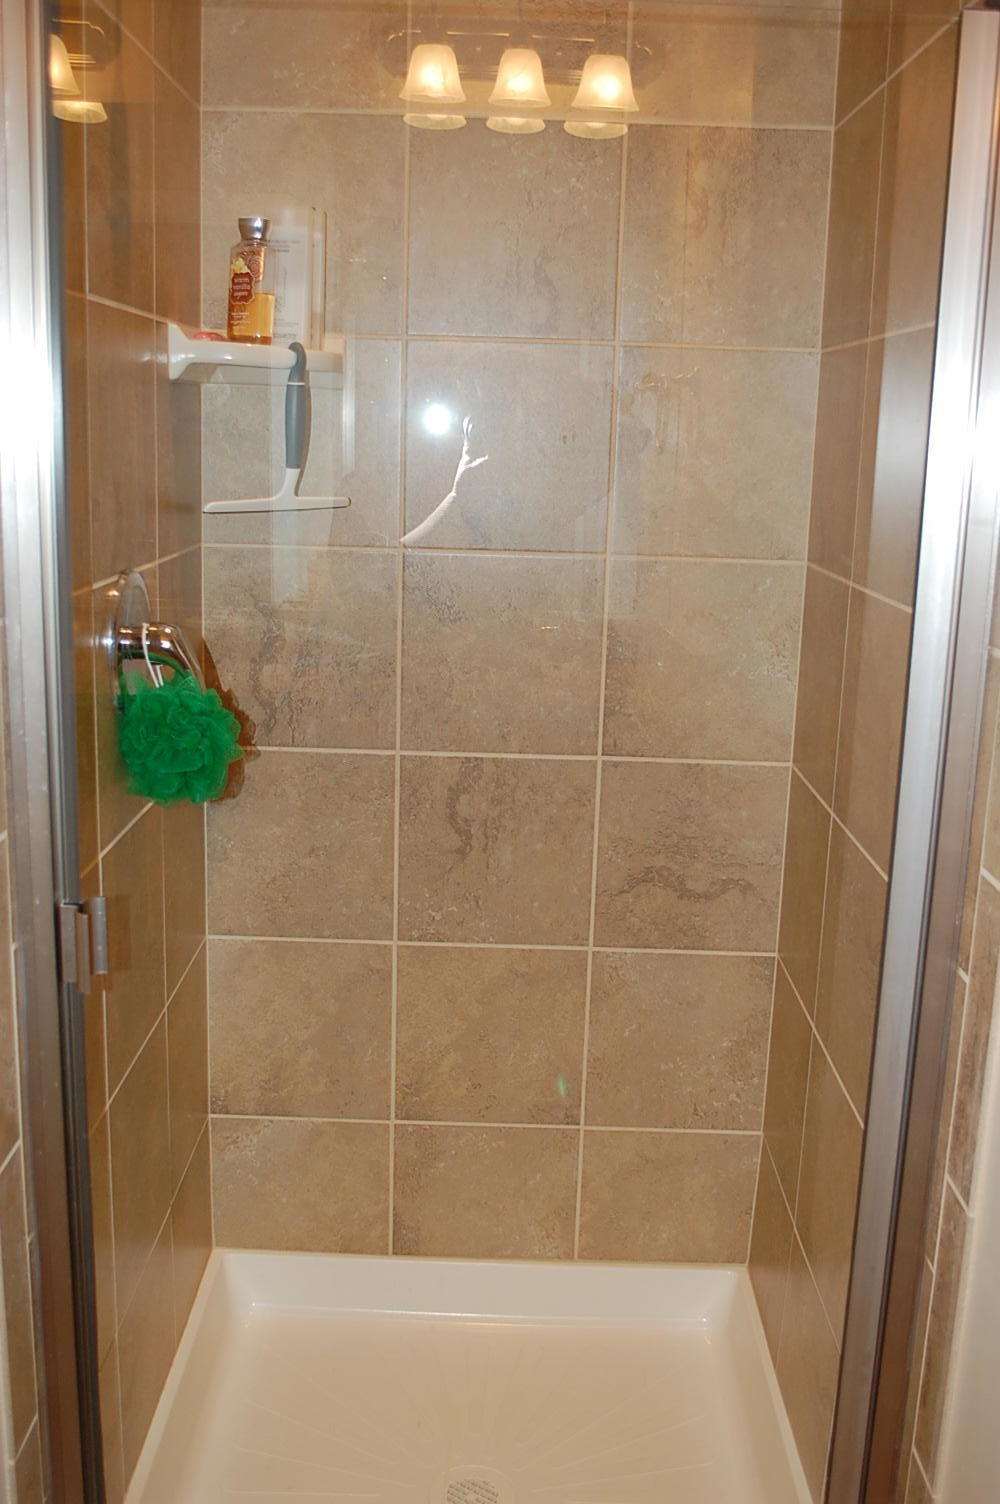 Virtually Brand New - lightly used as vacation home.  Upgraded cabinets, granite throughout. Master Suites on main floor and 2nd floor. Loft .Wired for alarm system. Ceilings, doors and showers are extra high. Tinted windows. End Unit.  Close to pool. Furniture package is available. Shopping,  walking trails., recreational areas and National Parks nearby. Easy Freeway Access.